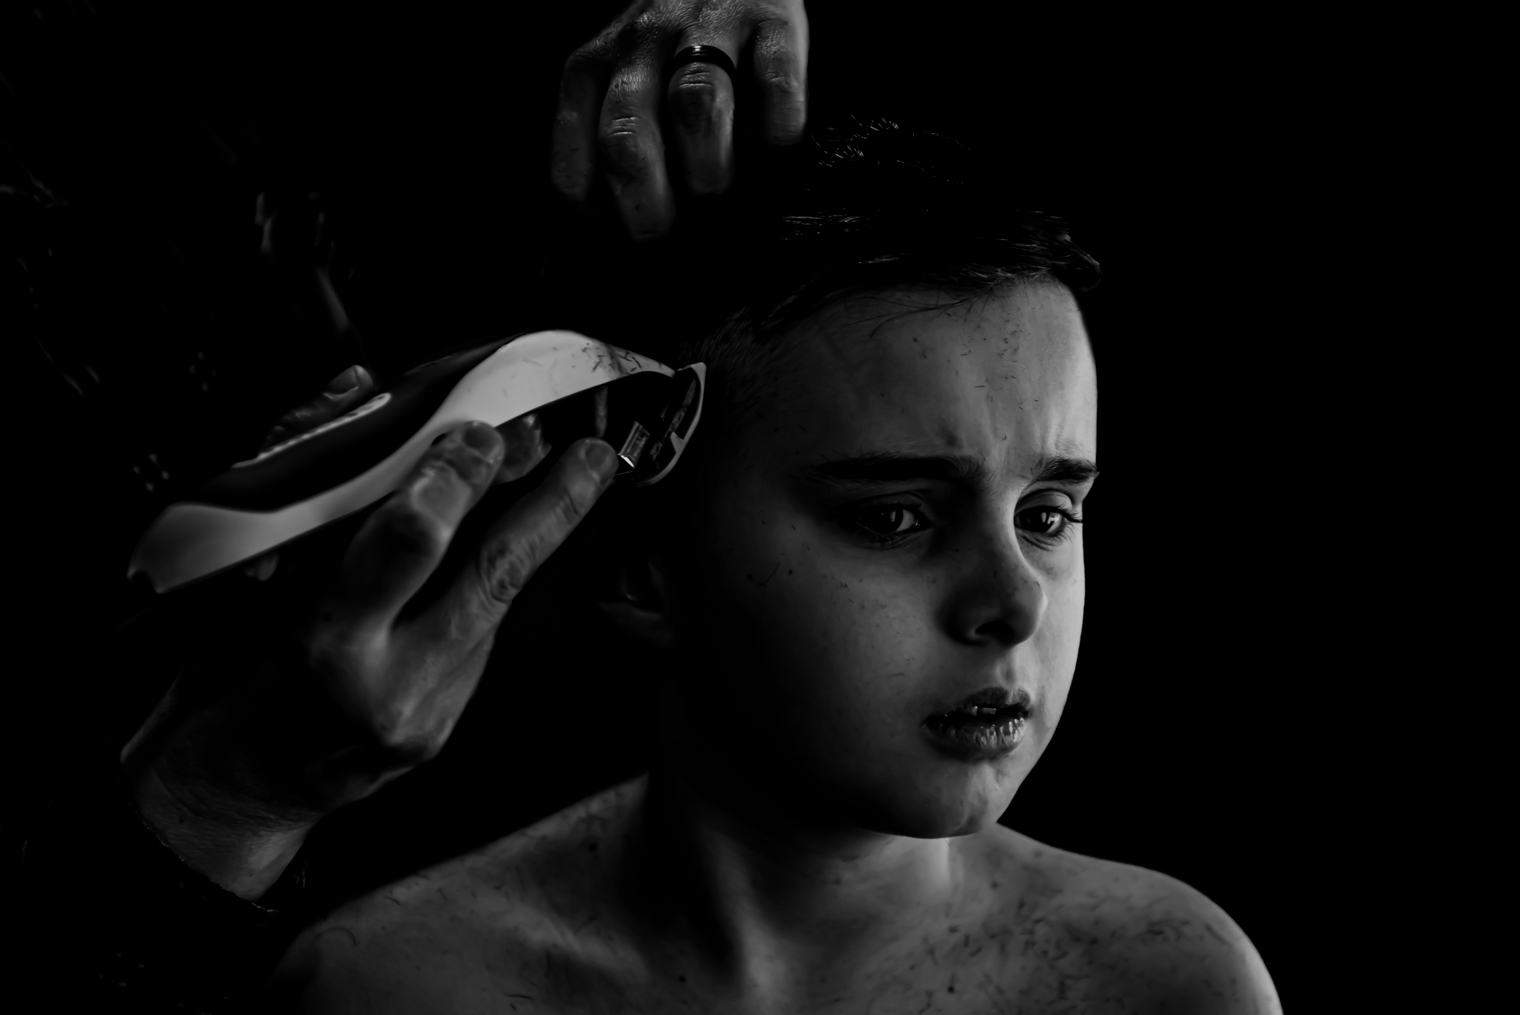 The story of a quarantine haircut from the perspective of a photographer's child in Ottawa Ontario